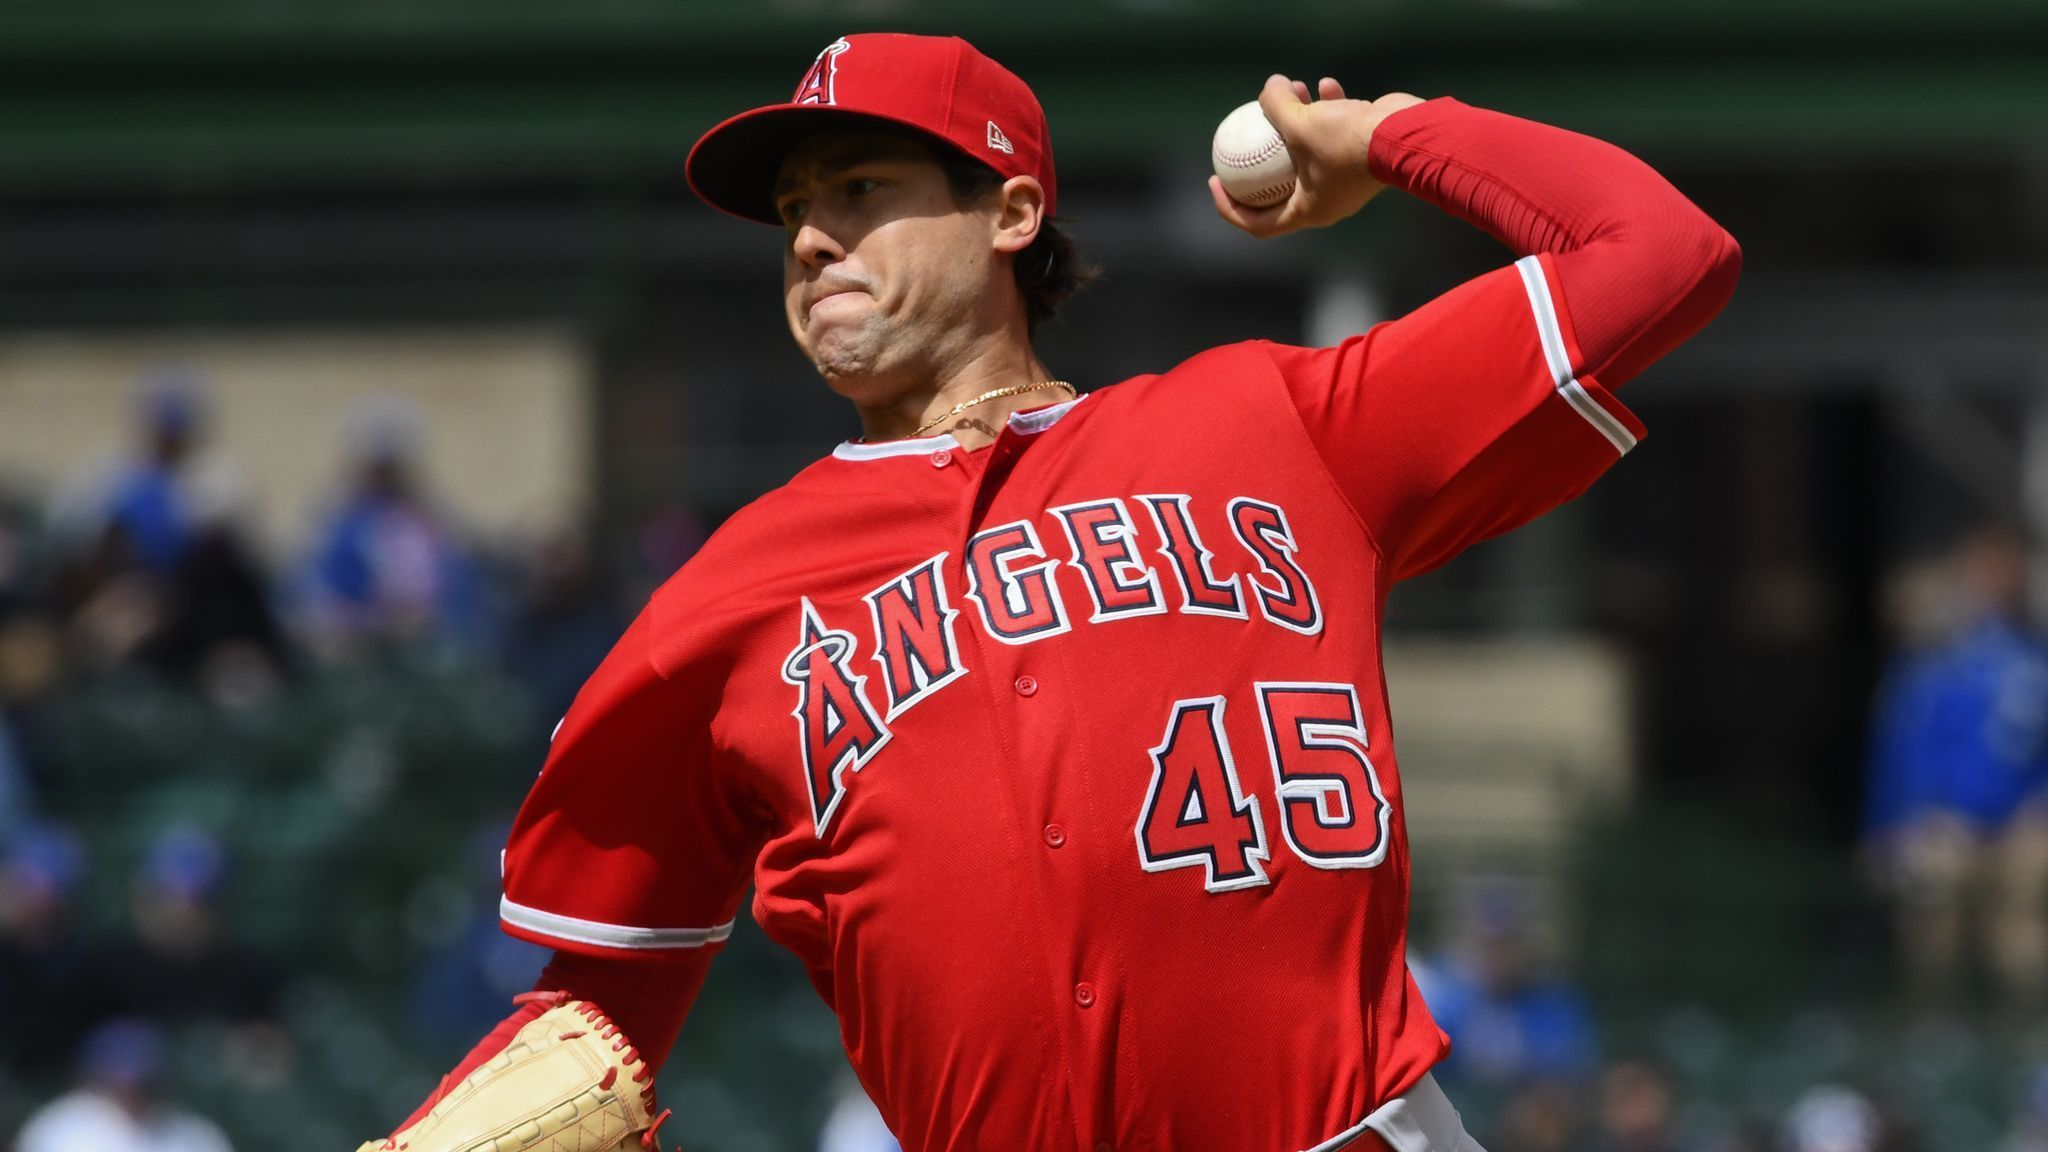 Angel starter Tyler Skaggs goes on injured list with ankle sprain